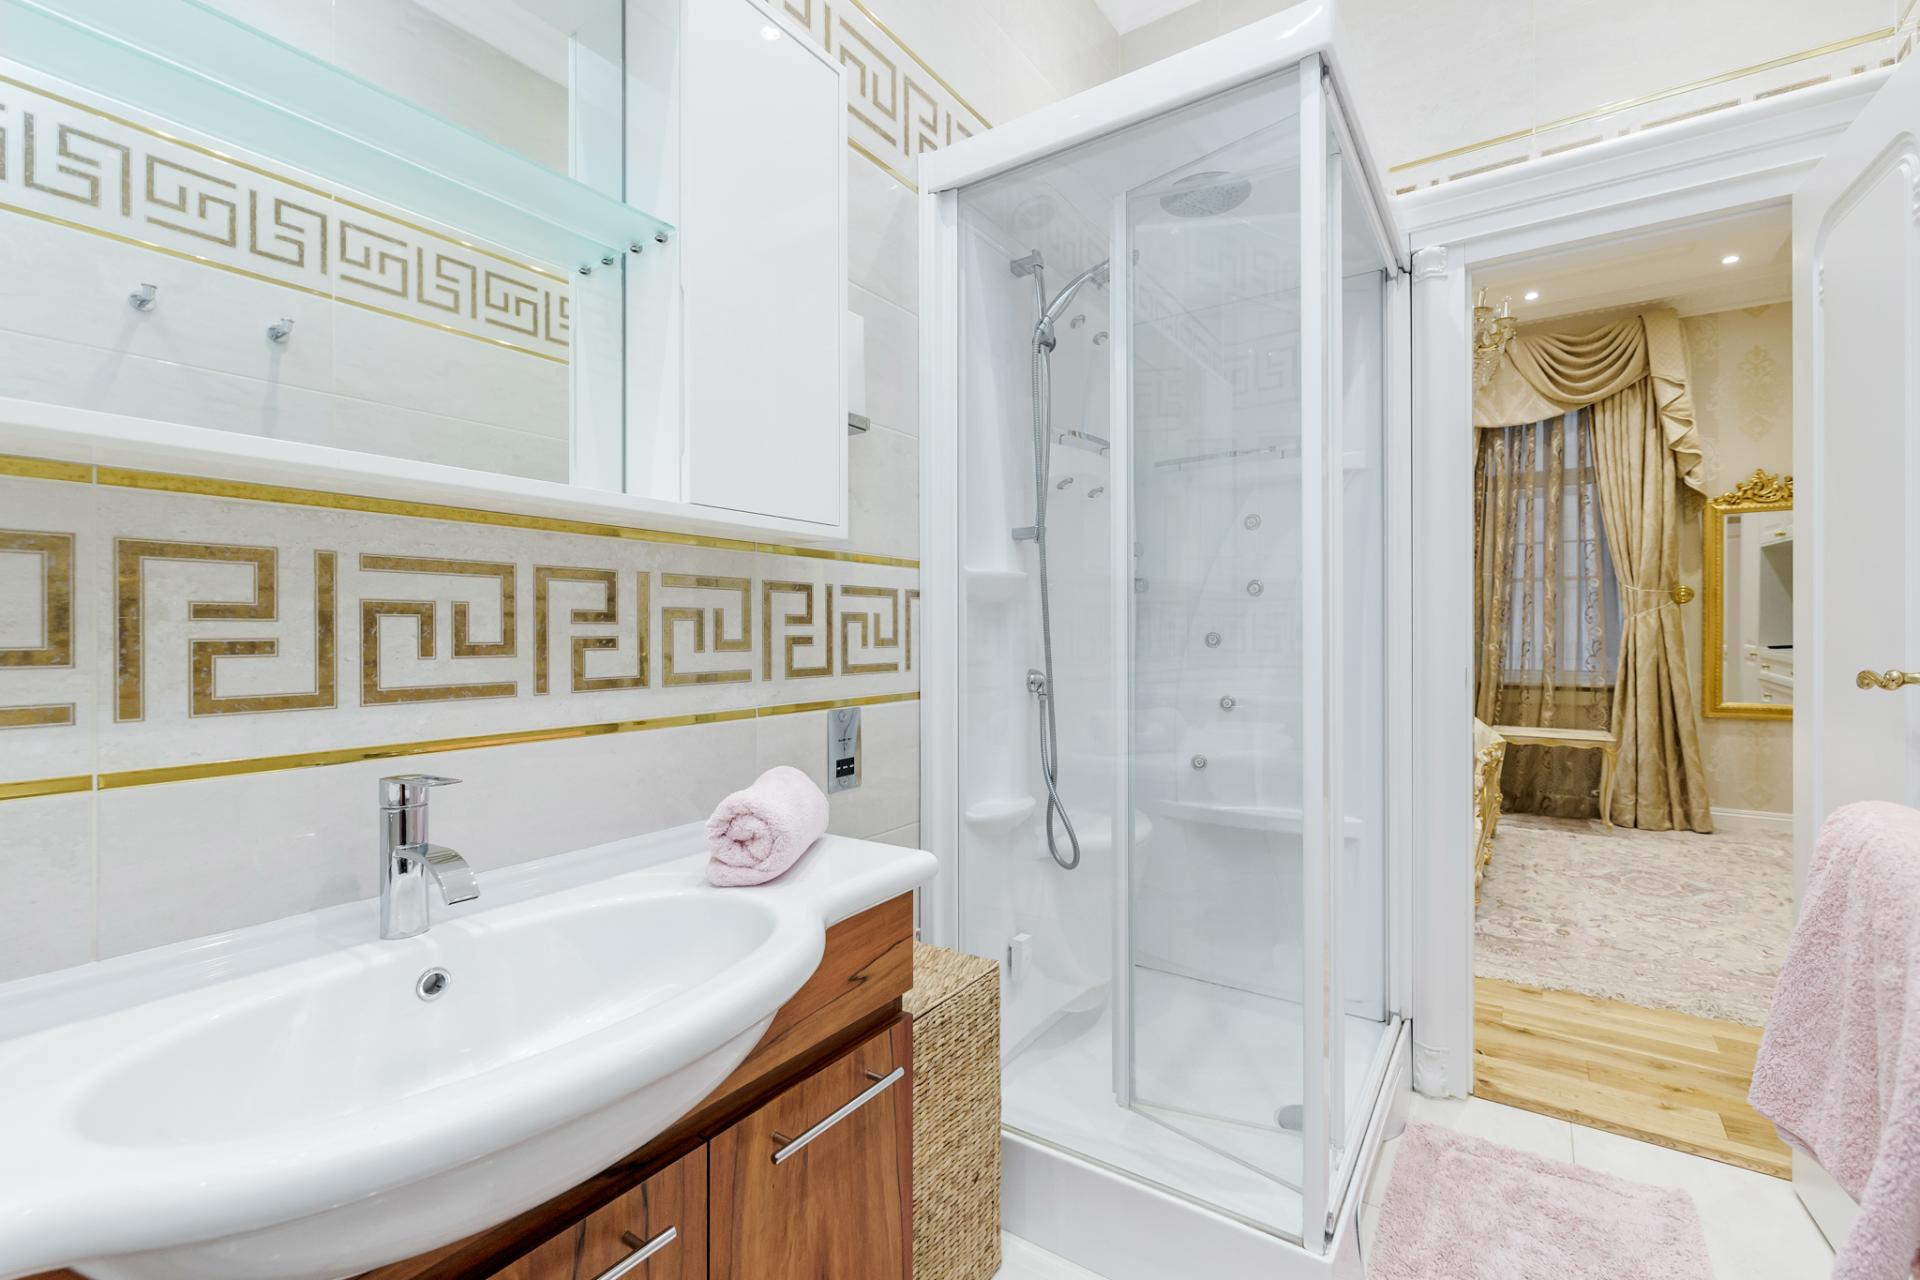 Shower at Grosvenor Square Apartment, Mayfair, London - Citybase Apartments